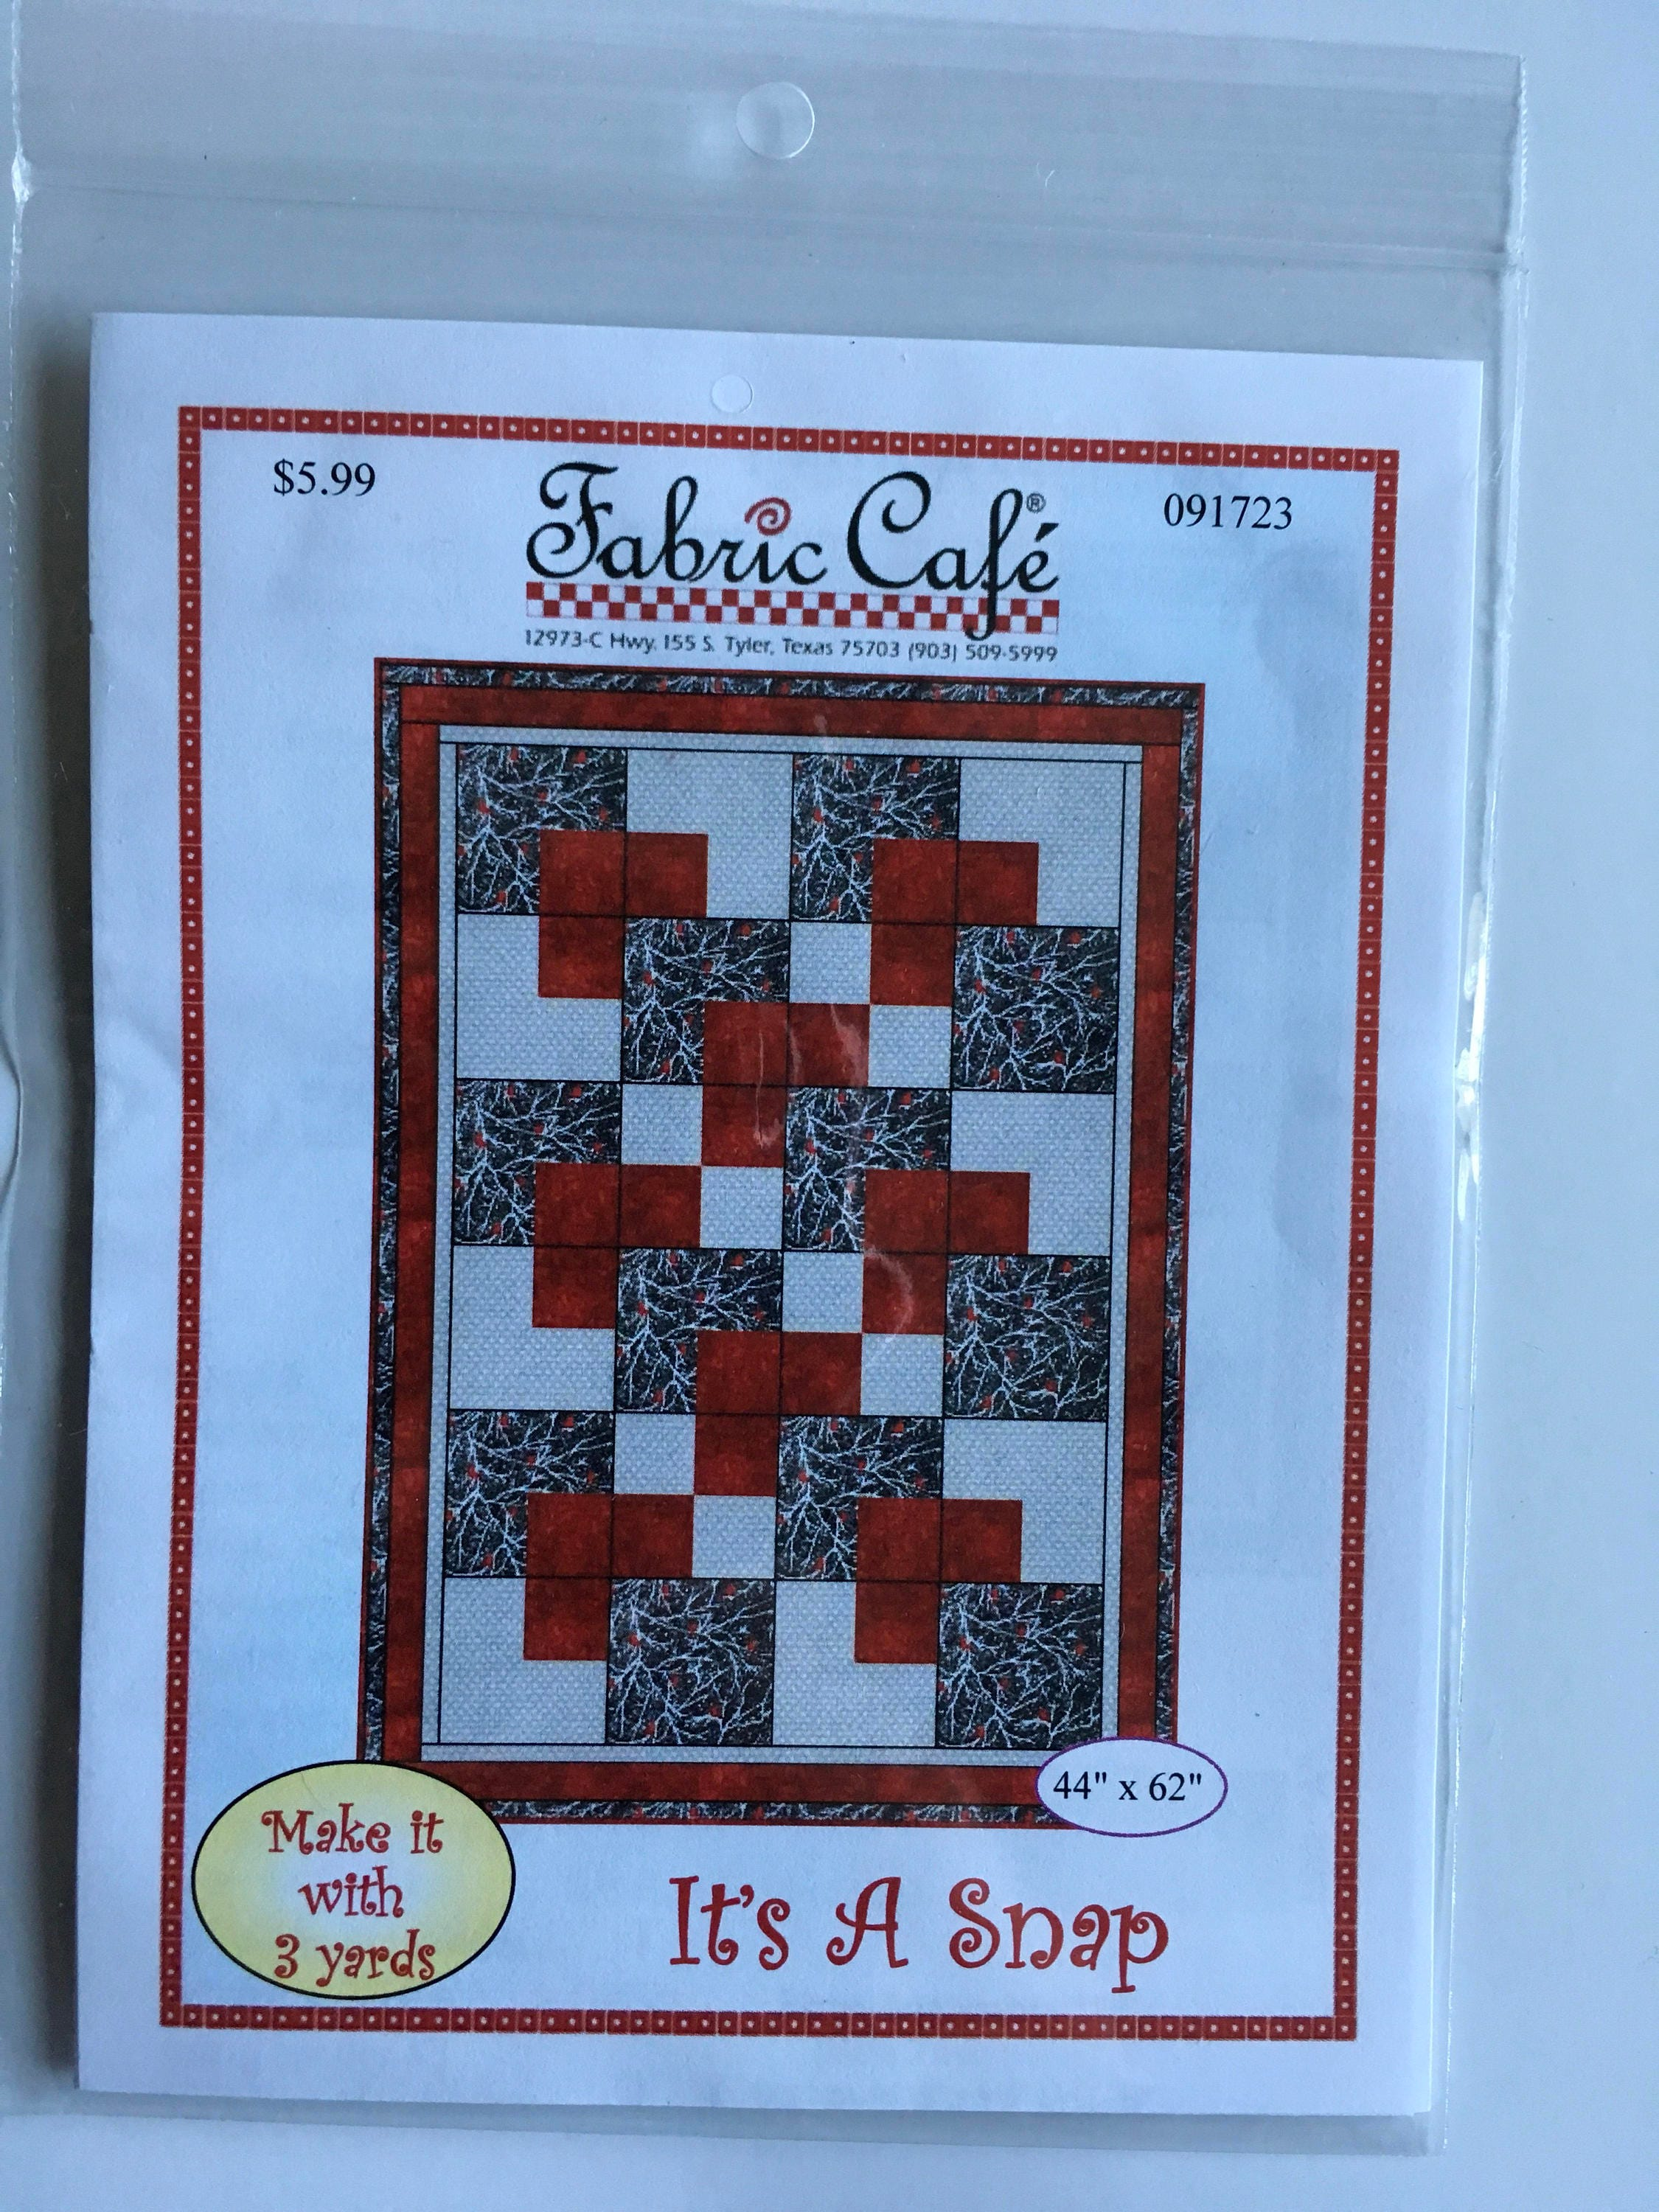 Its A Snap 3 Yard Quilt Pattern Fabric Cafe